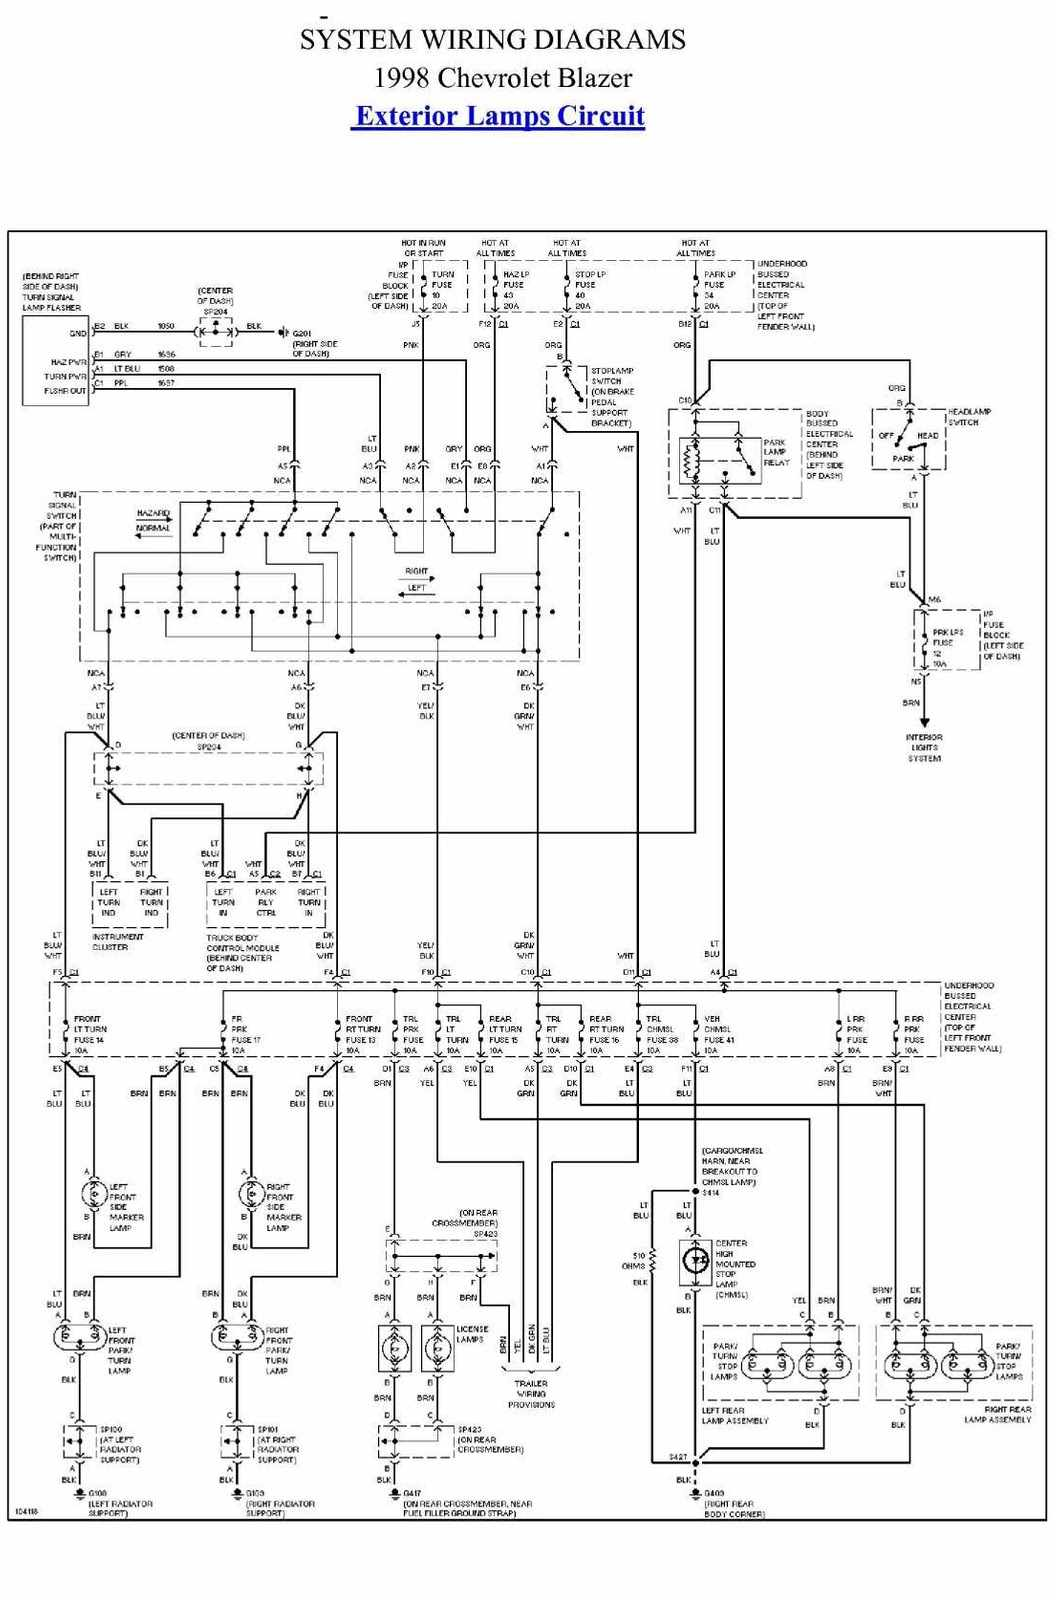 lights control circuit diagram